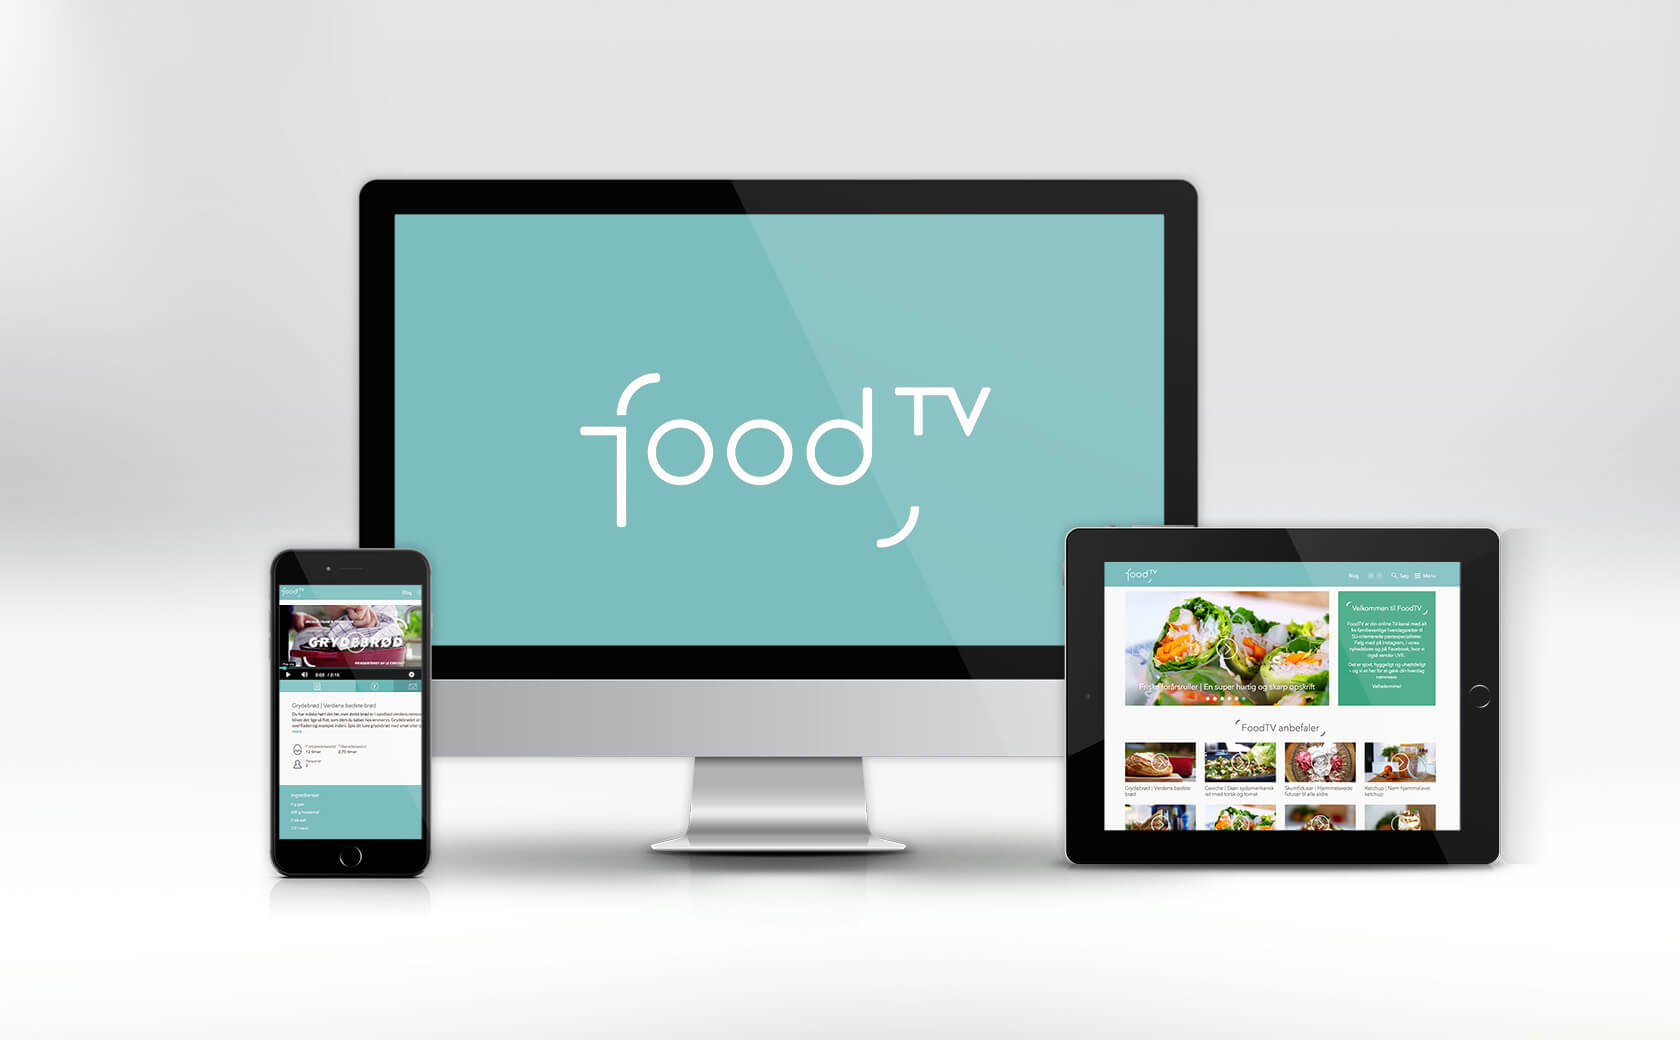 FoodTV_Devices_1680_1.jpg